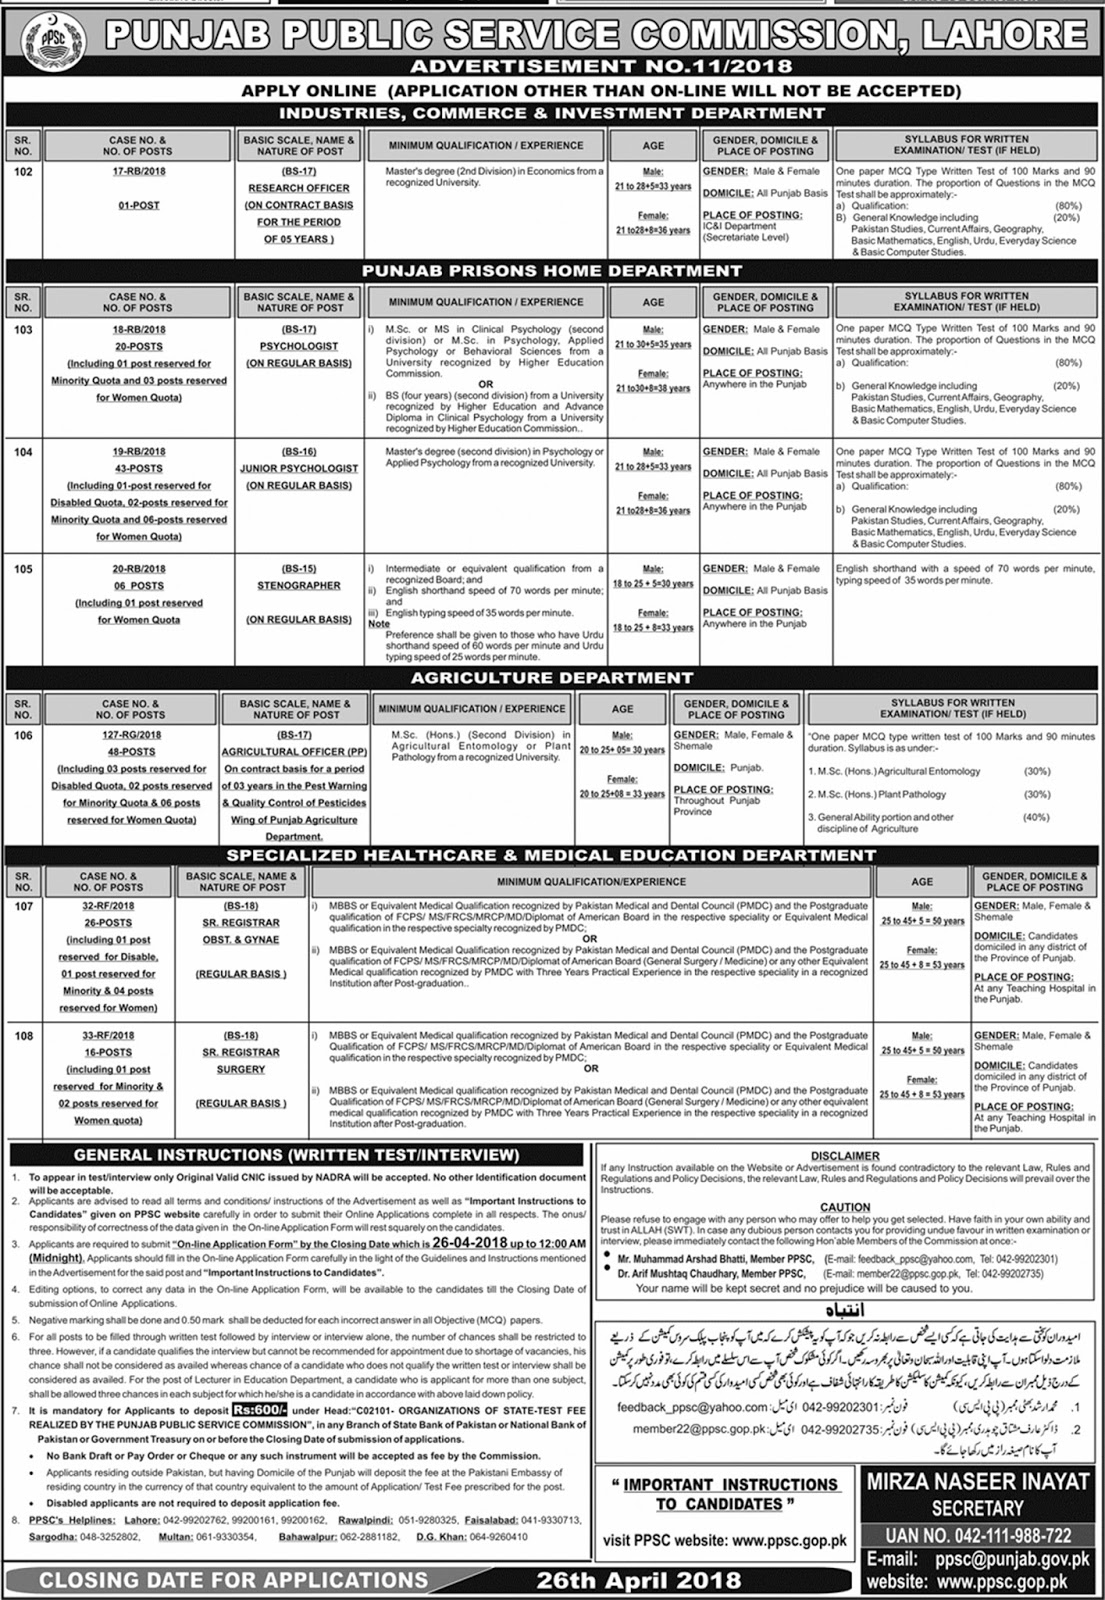 New PPSC Jobs Advertisement No. 11/201